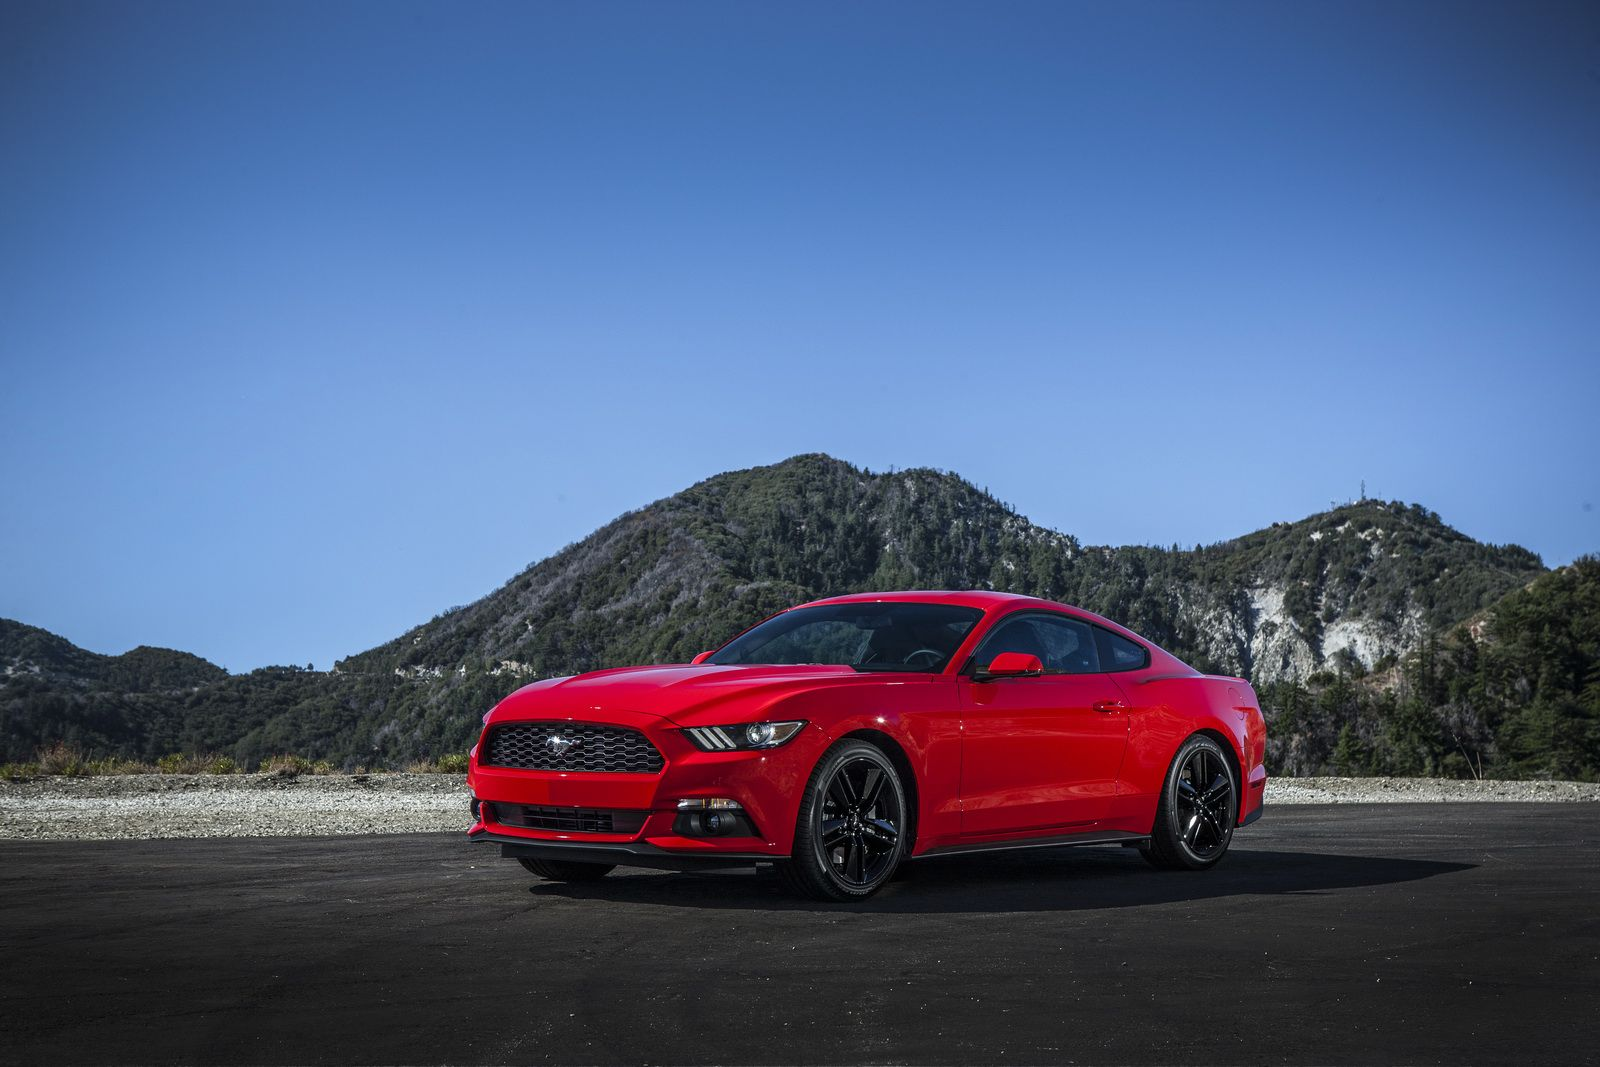 Ohio ford dealership now selling 550hp ecoboost mustangs for 33k